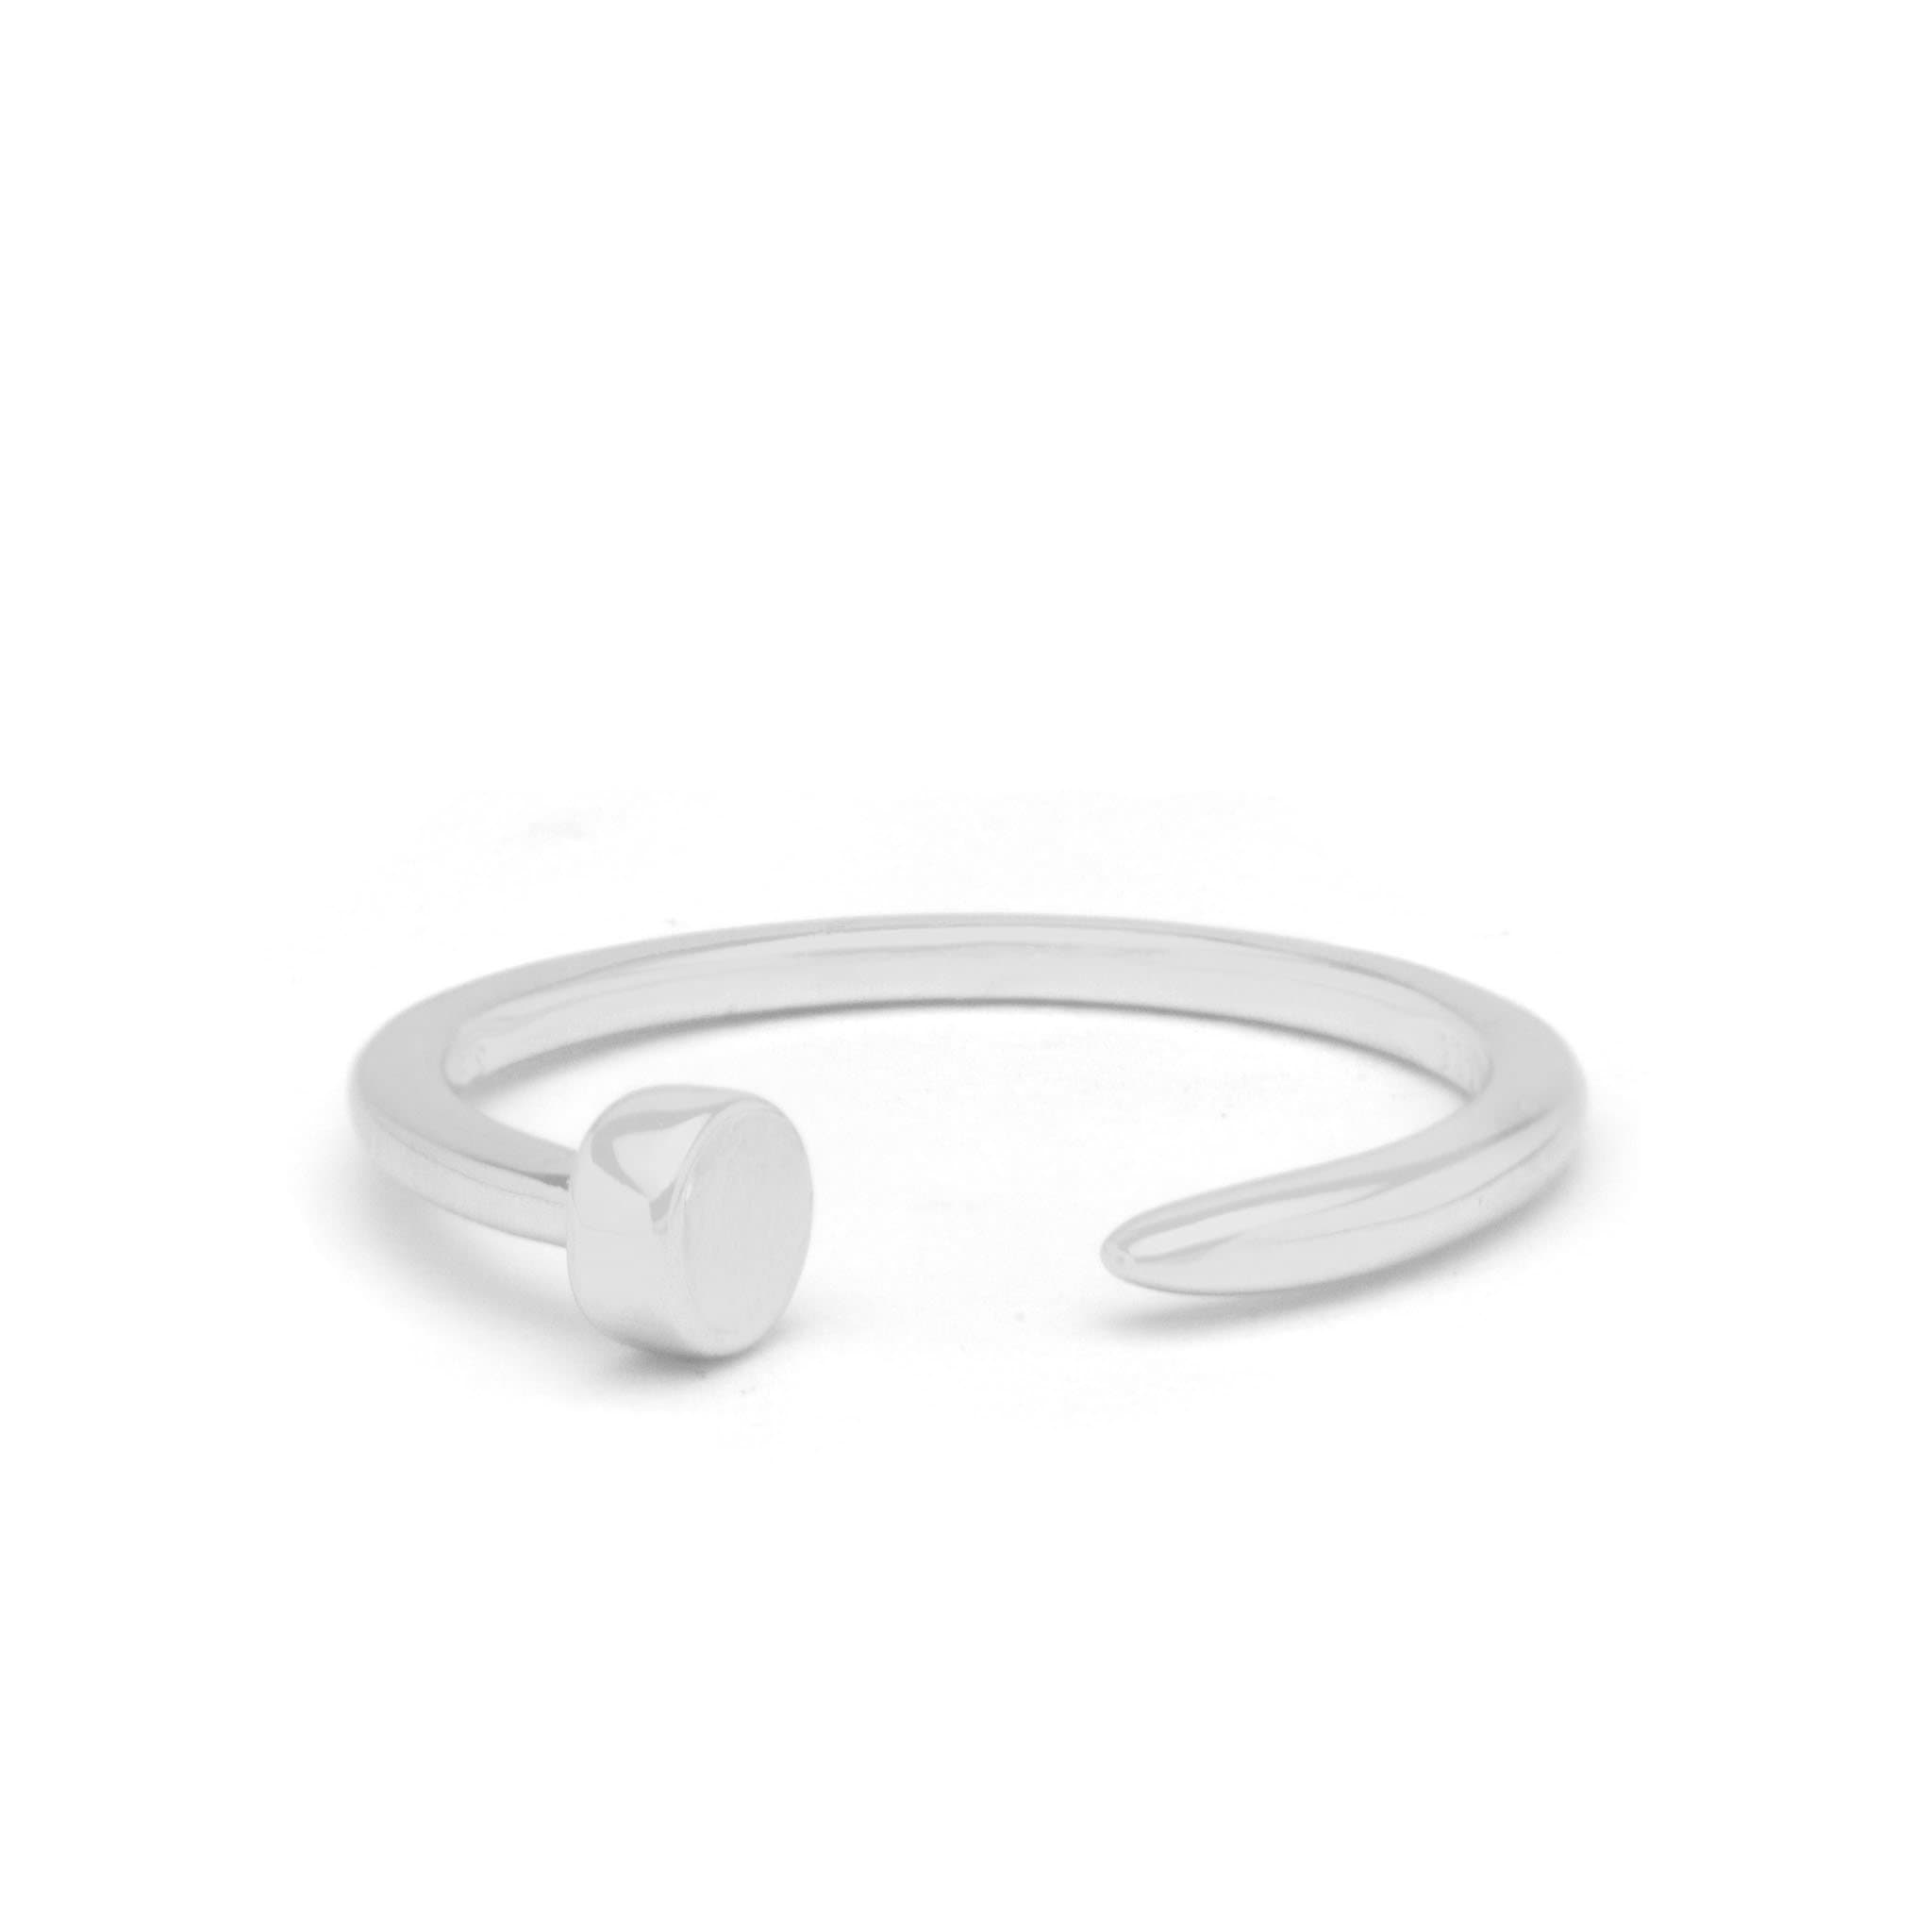 Jeanne's Jewels Rings White Gold / 5/6 Ximena